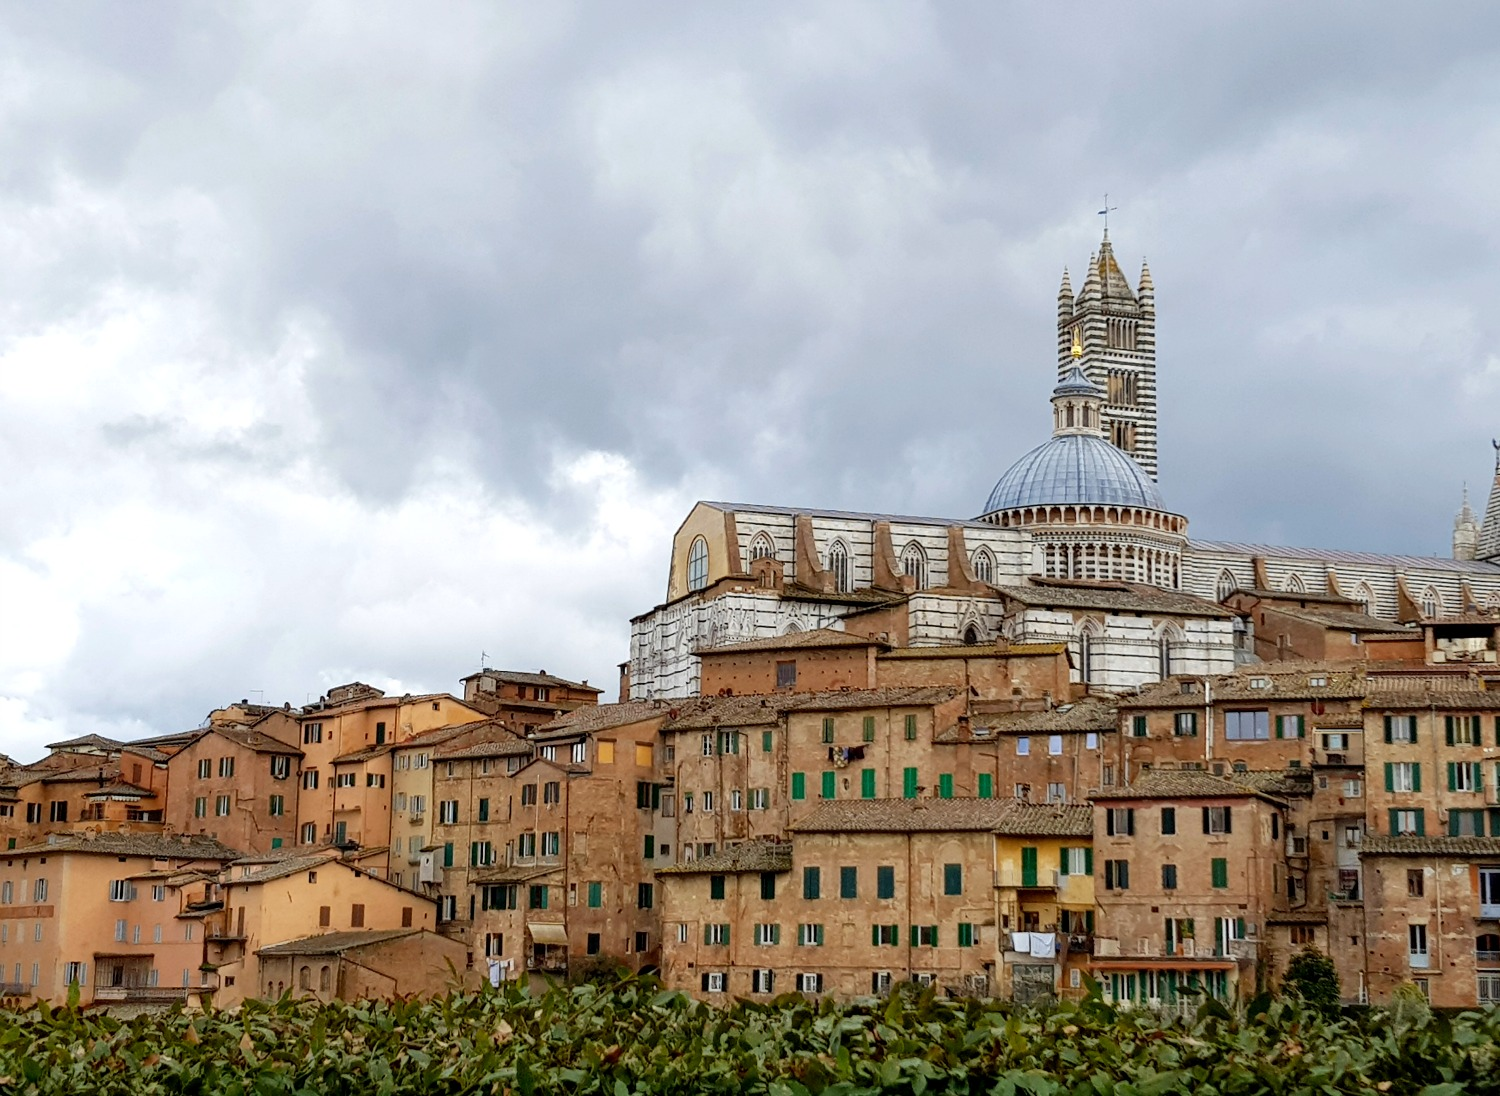 View towards the Duomo and skyline of Siena - exploring Siena with kids, our tour discovering art, history and animals